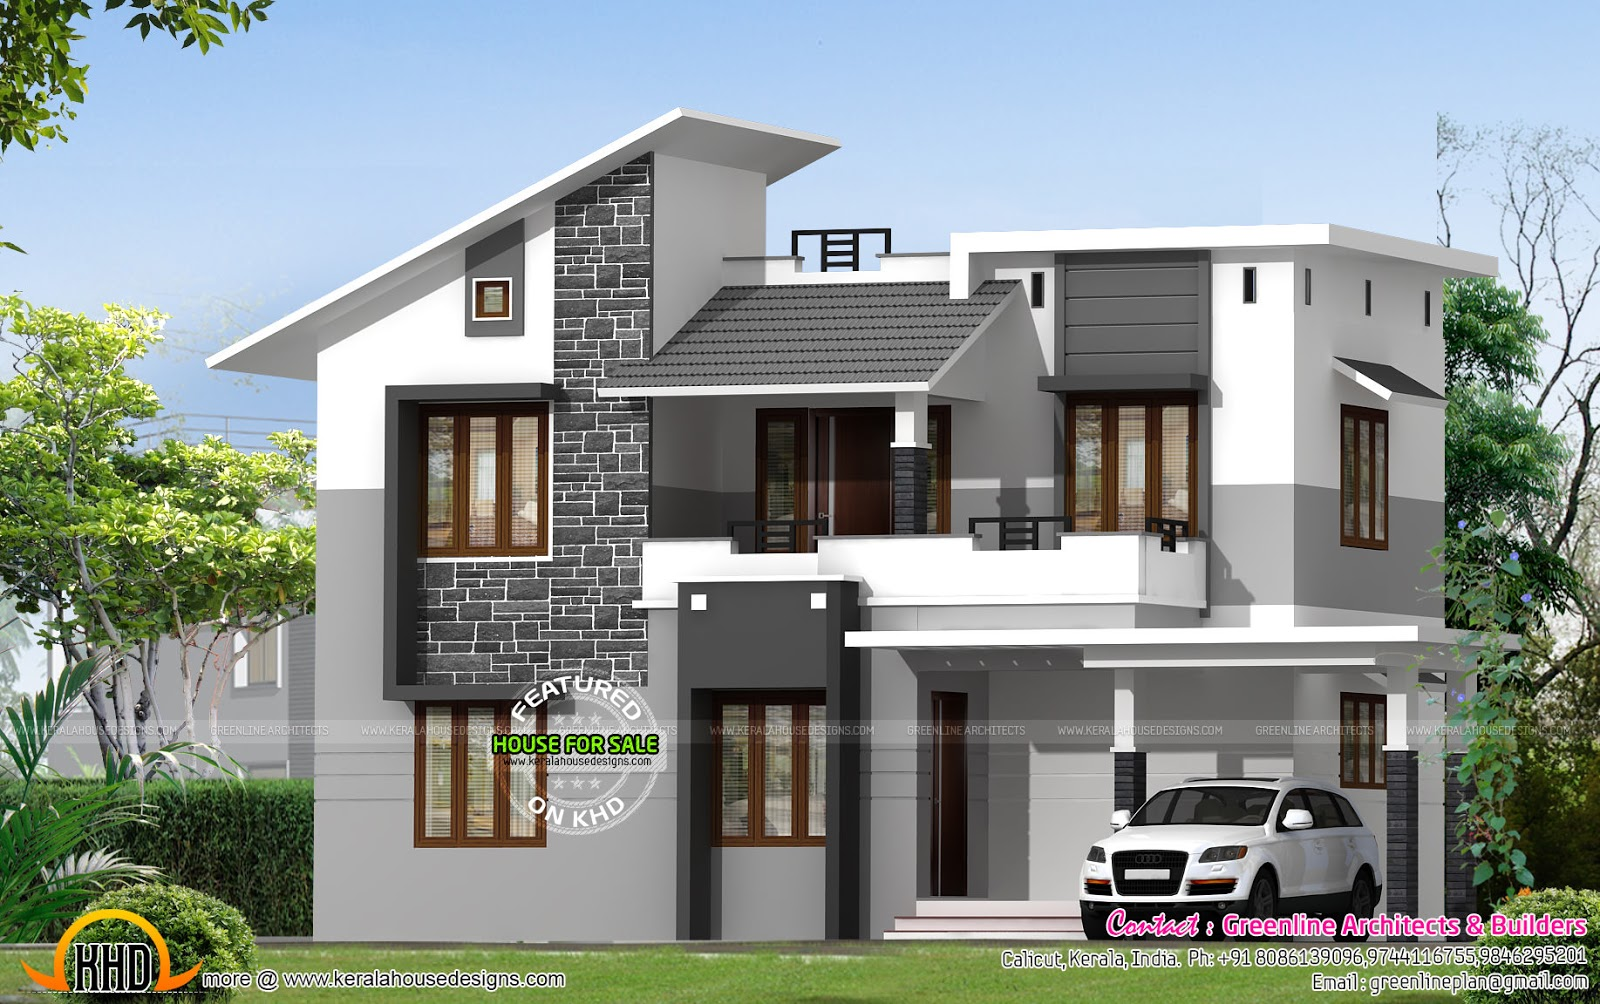 2 types of villa home plans kerala home design and floor for Home designs for sale